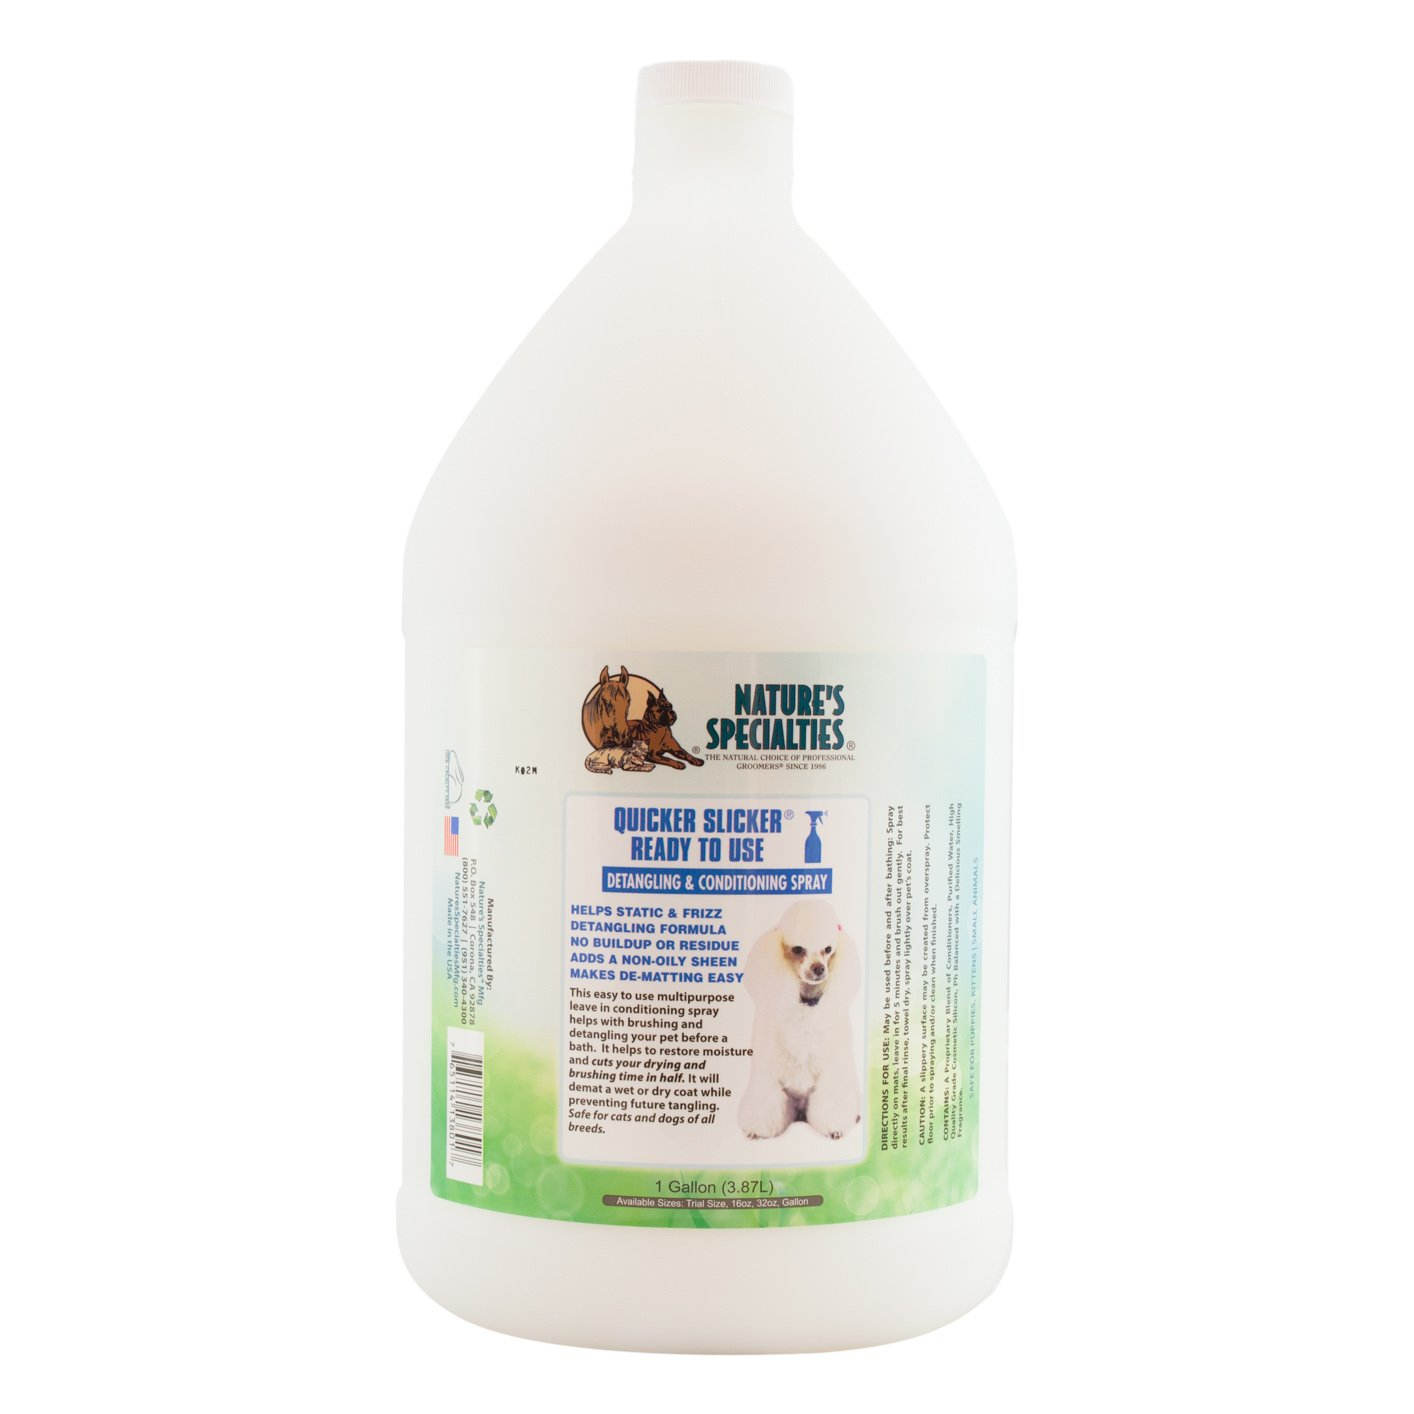 Nature's Specialties Quicker Slicker Ready to Use Pet Conditioner by Nature's Specialties Mfg